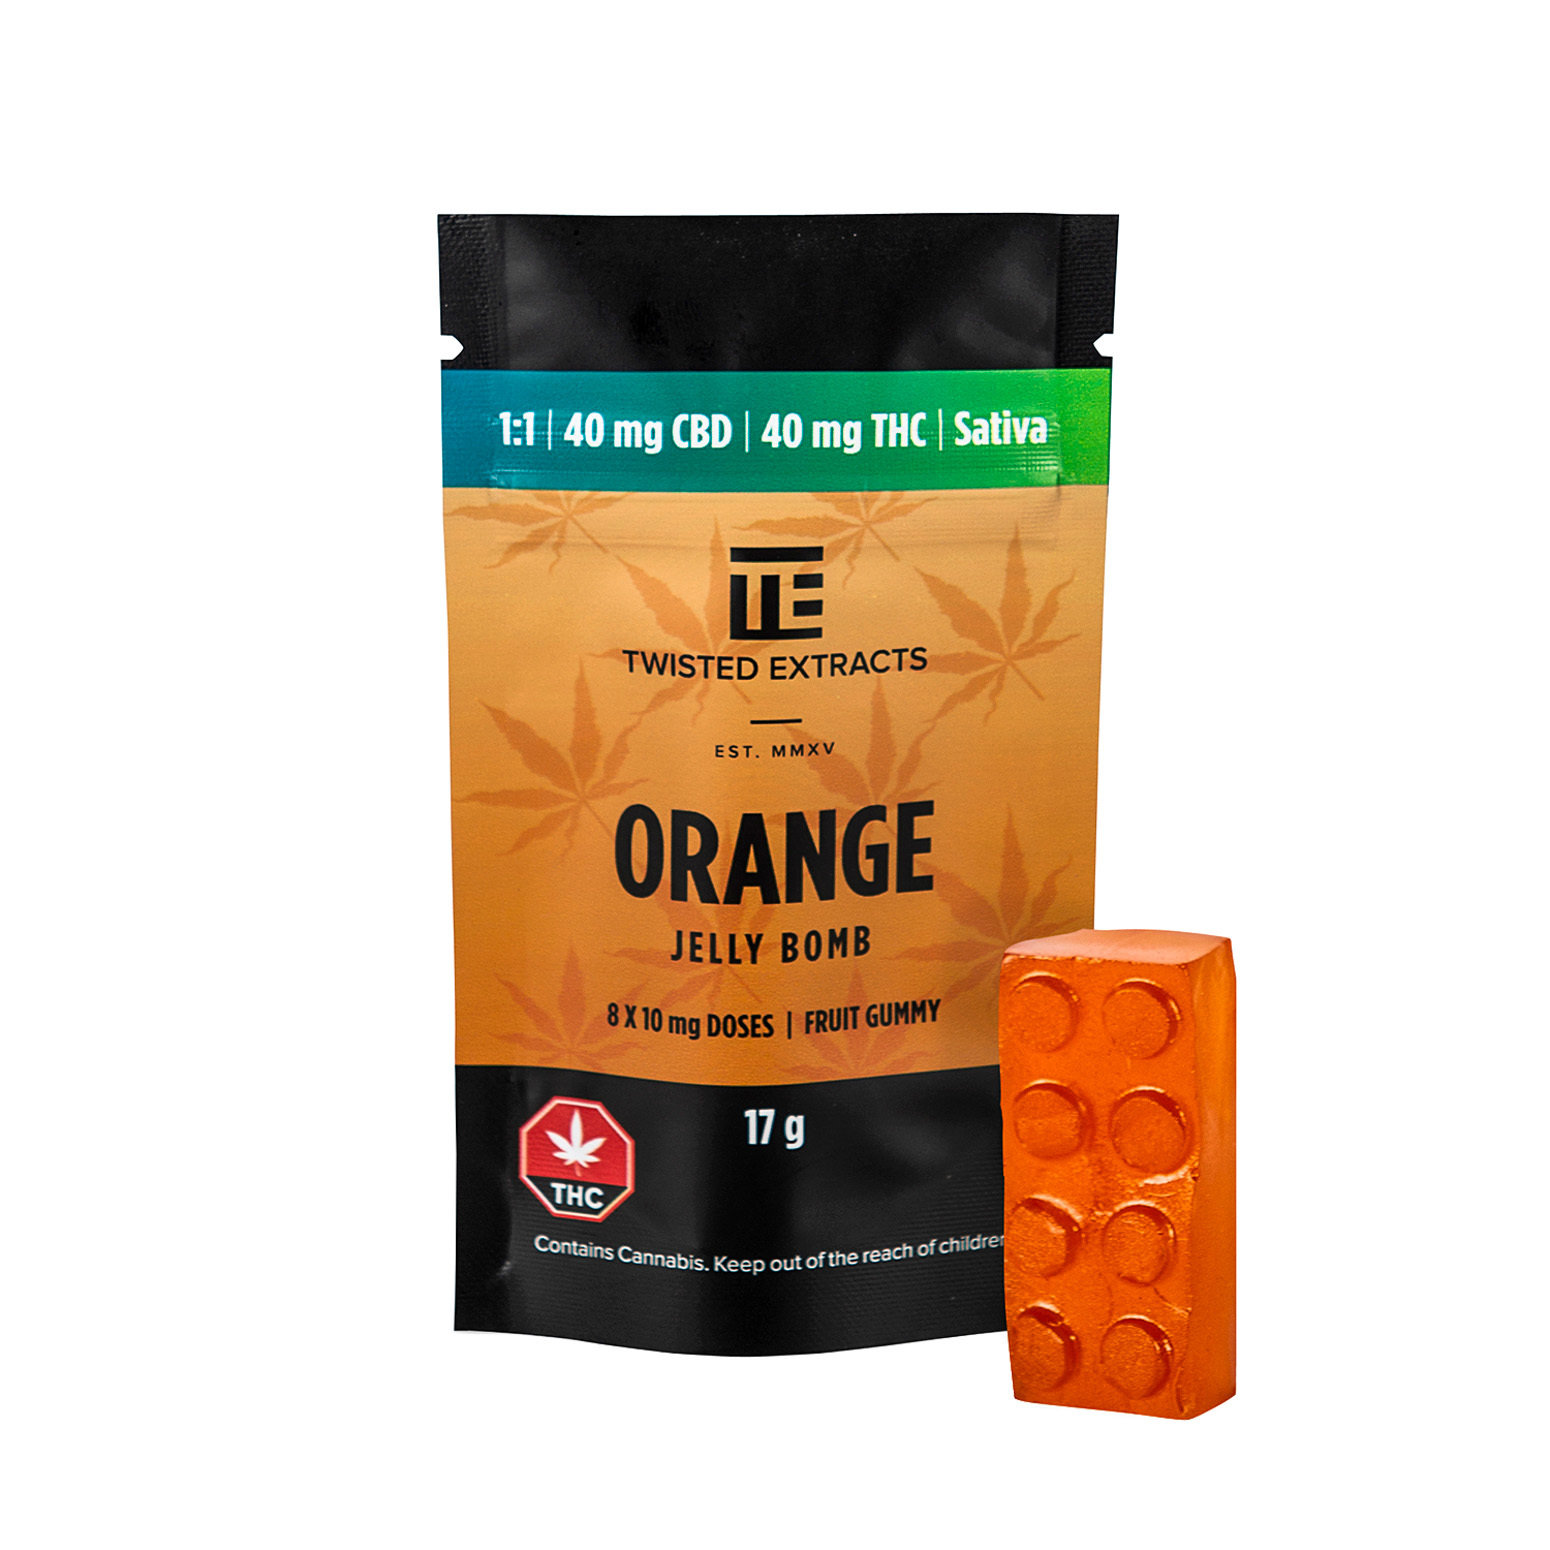 40mg 1:1 THC/CBD Orange Jelly Bomb by Twisted Extracts 00009